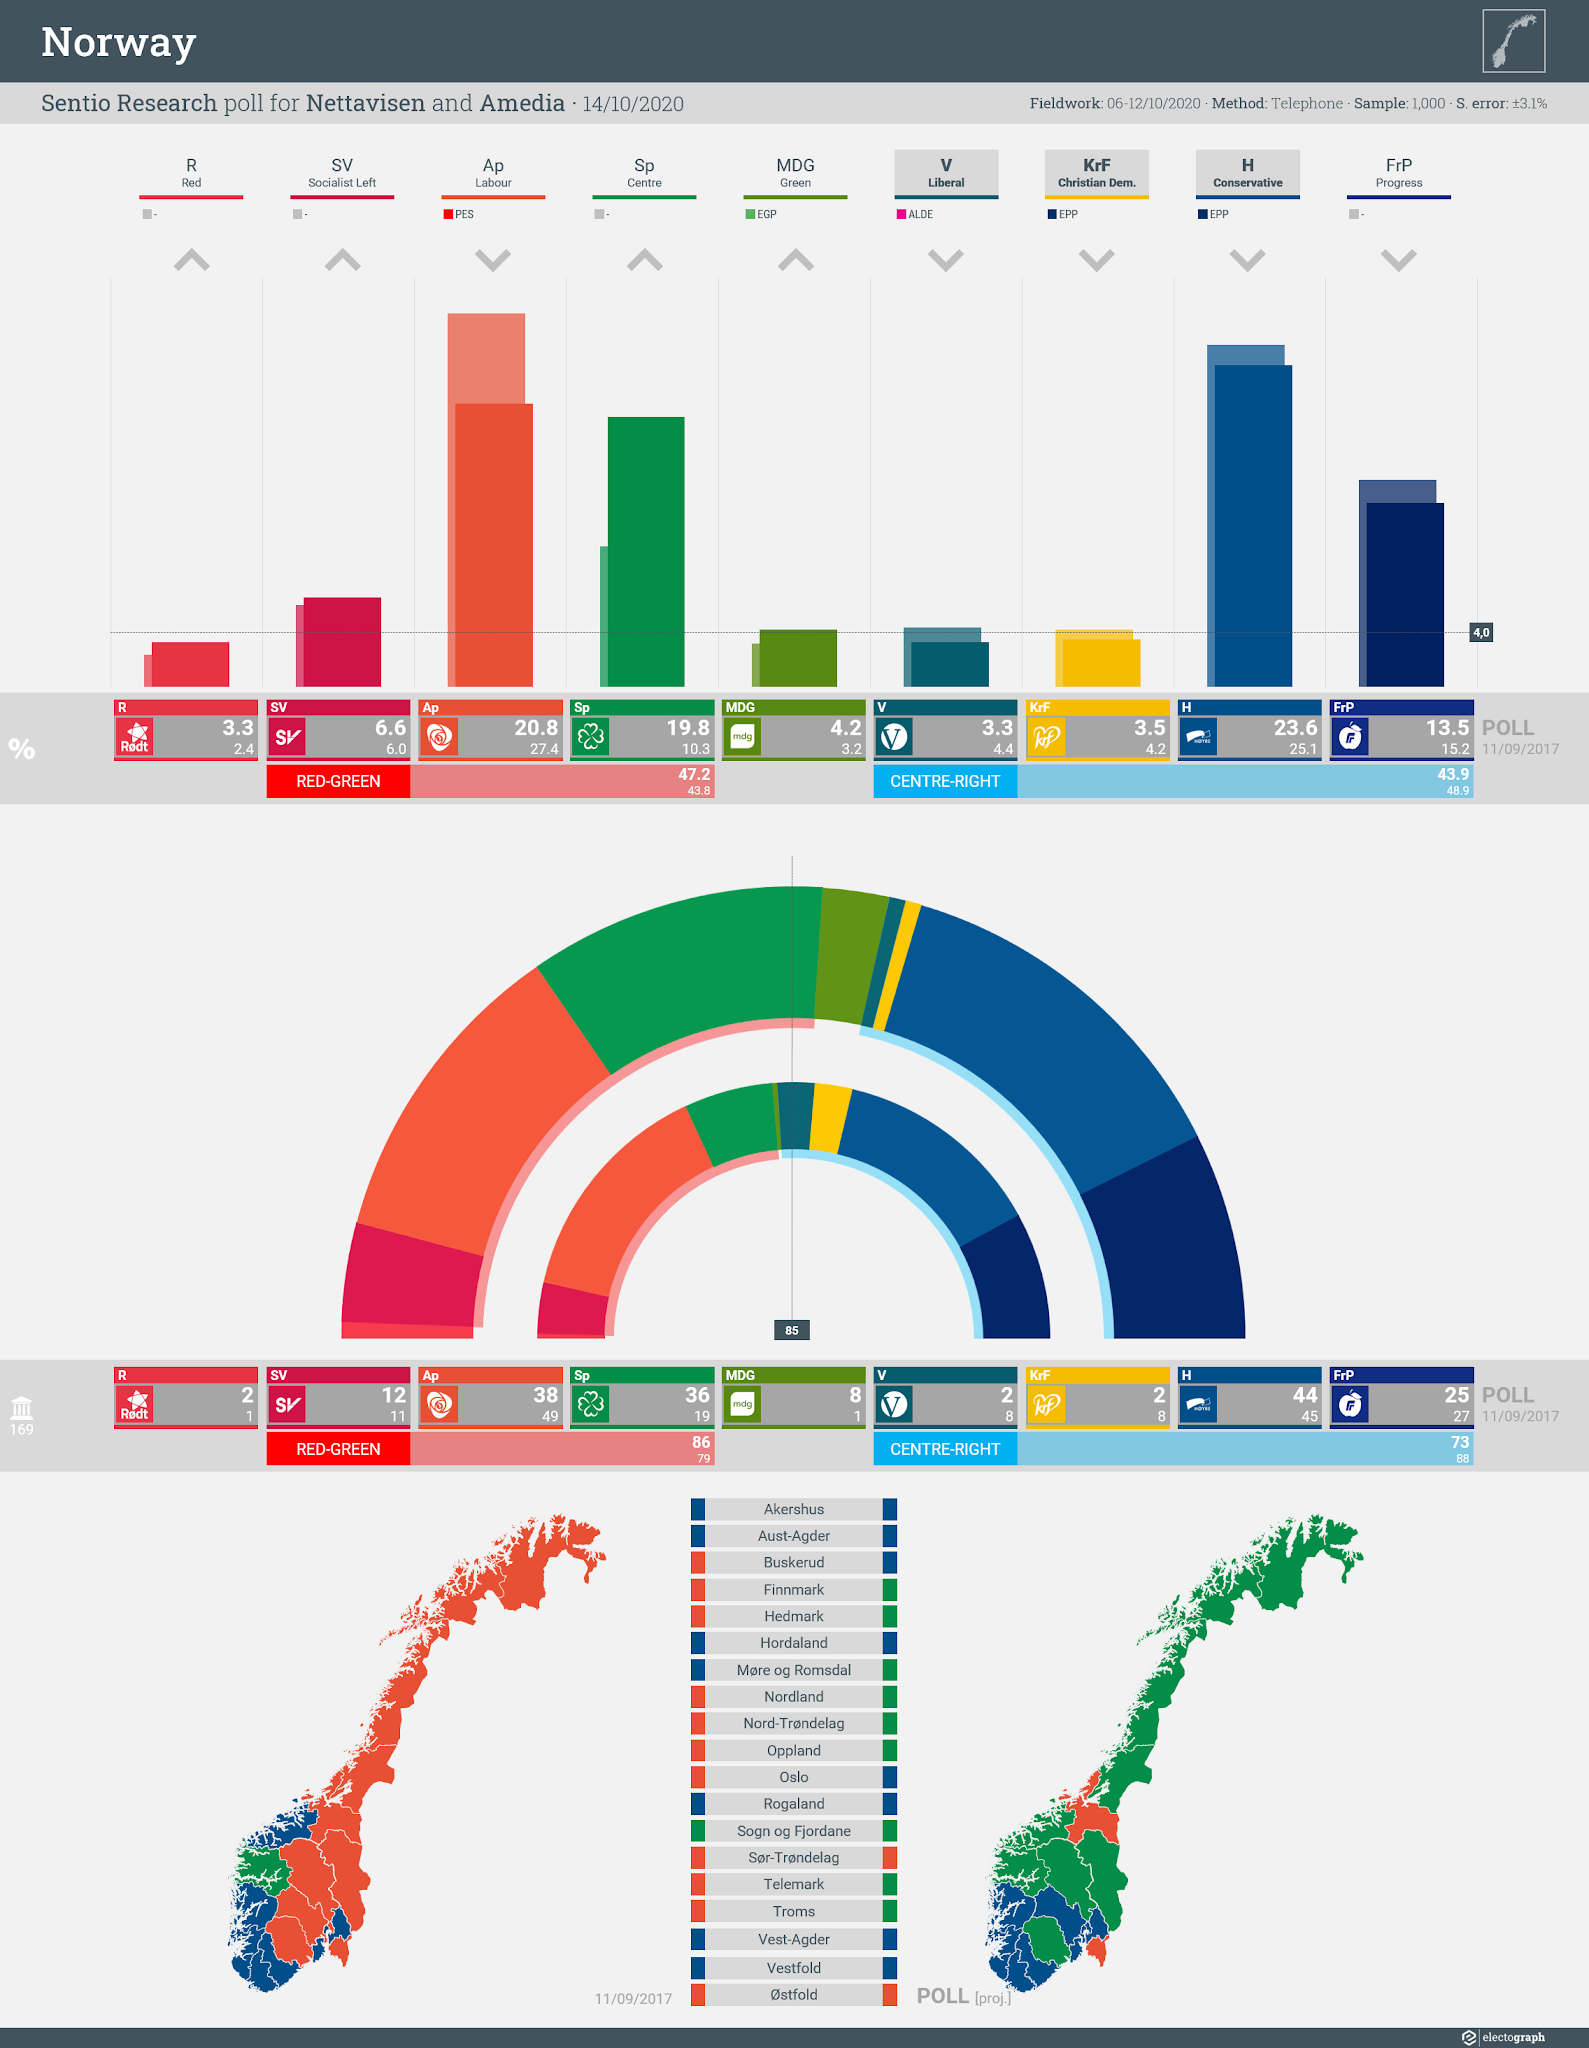 NORWAY: Sentio Research poll chart for Nettavisen and Amedia, 14 October 2020